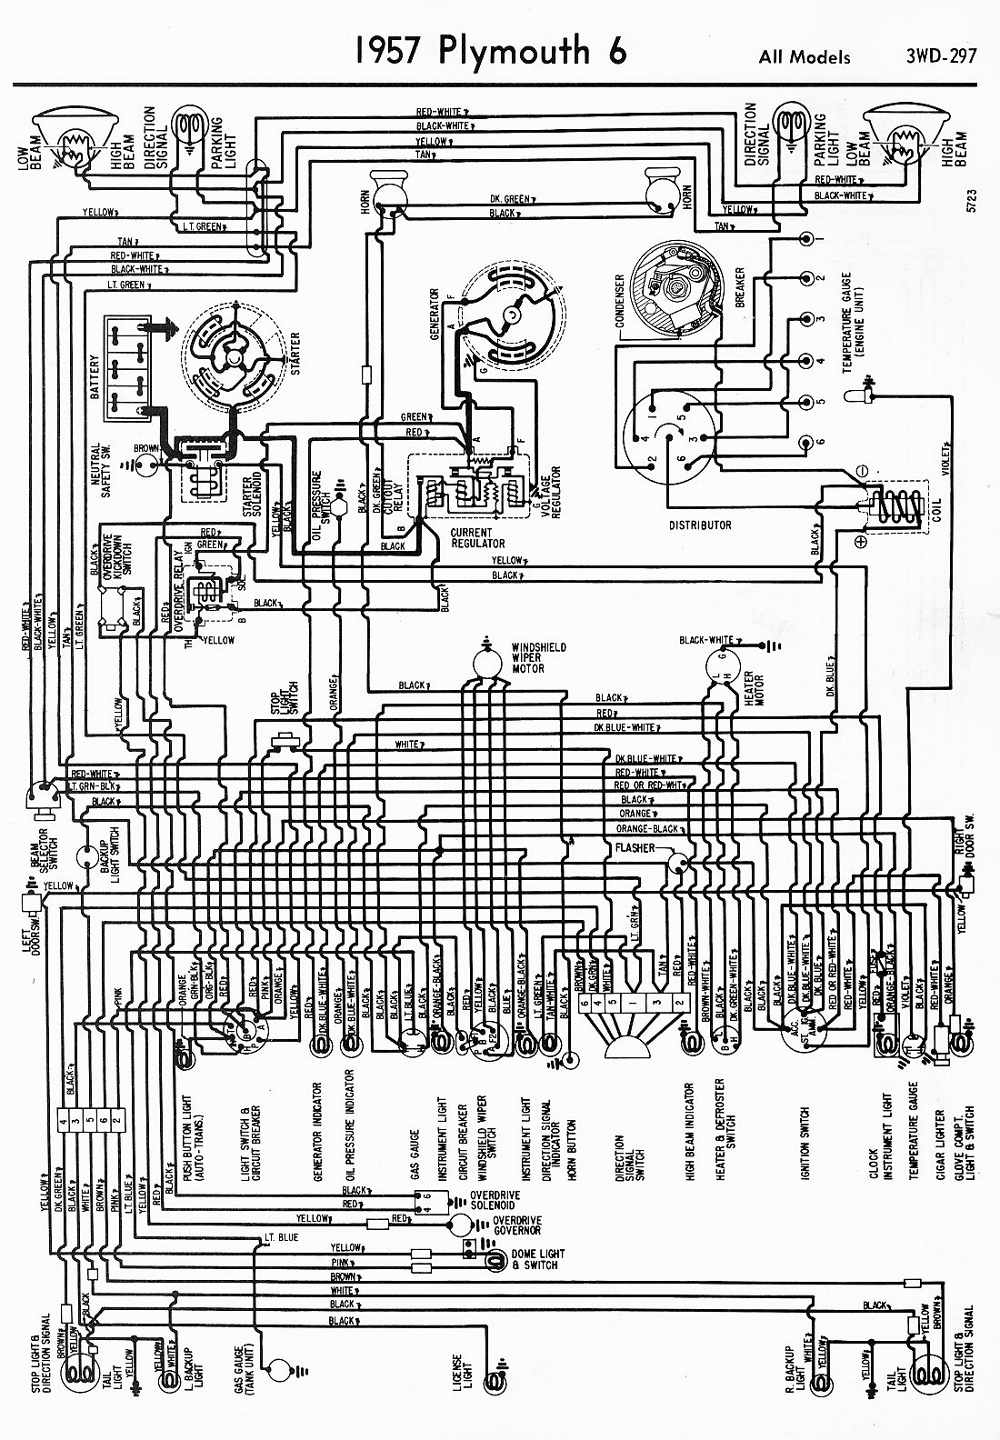 wiring diagrams 911 1957 plymouth 6 all models wiring diagram plymouth  engine wiring diagram 1957 plymouth